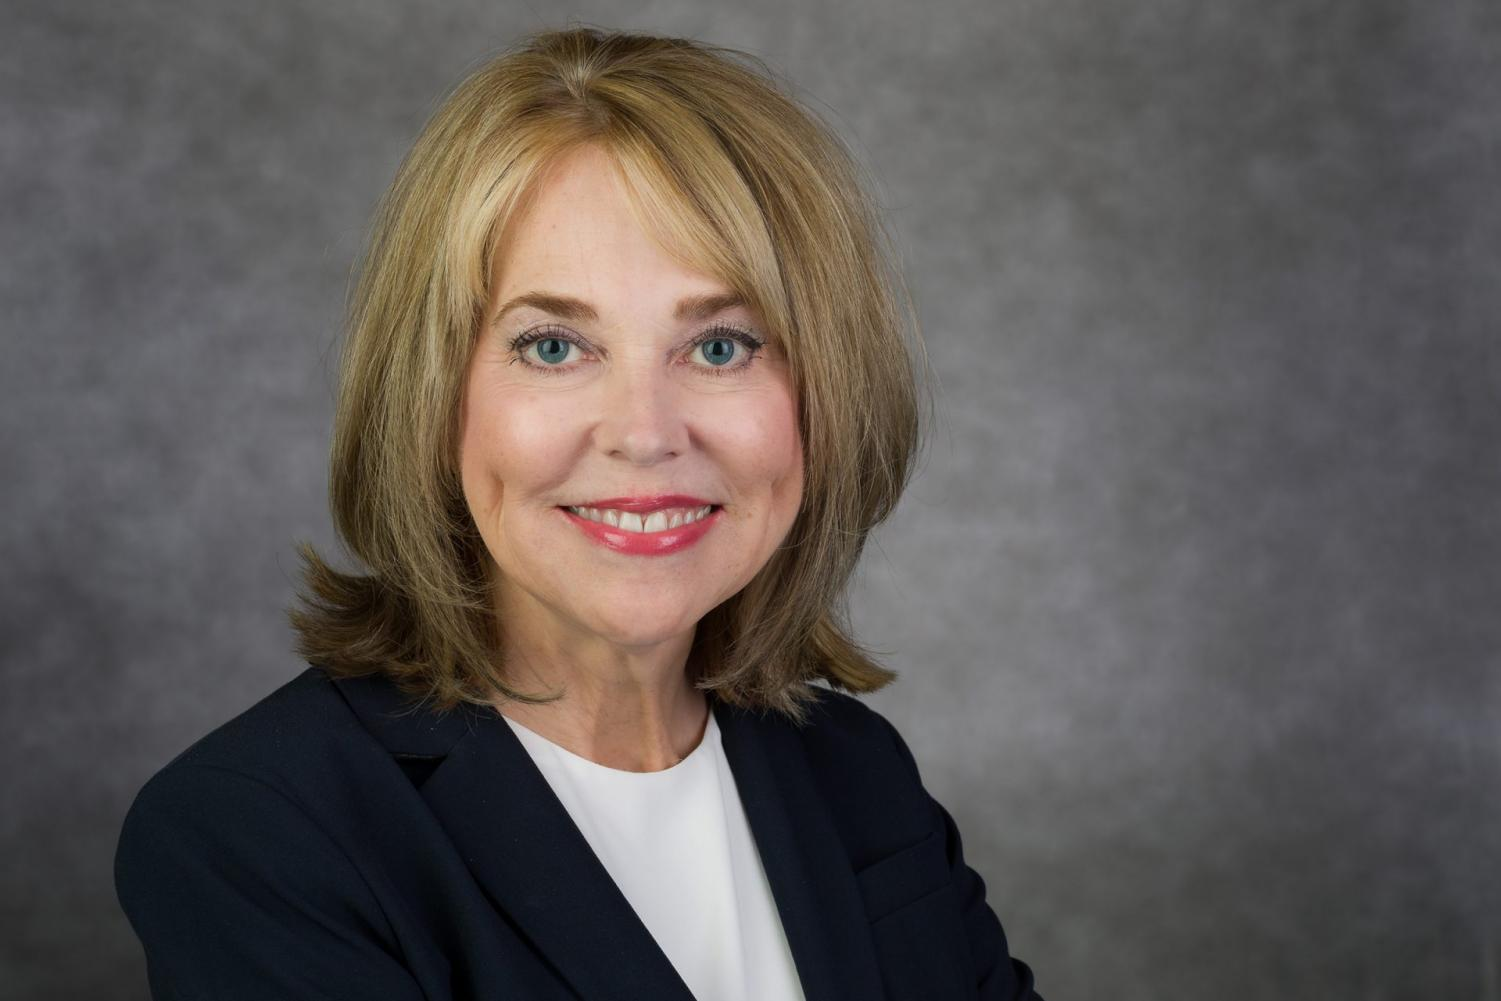 Ann Skiffington, an attorney, was named the director of Gender Equity. The Office of Gender Equity and the position replaced the Title IX office and coordinator.